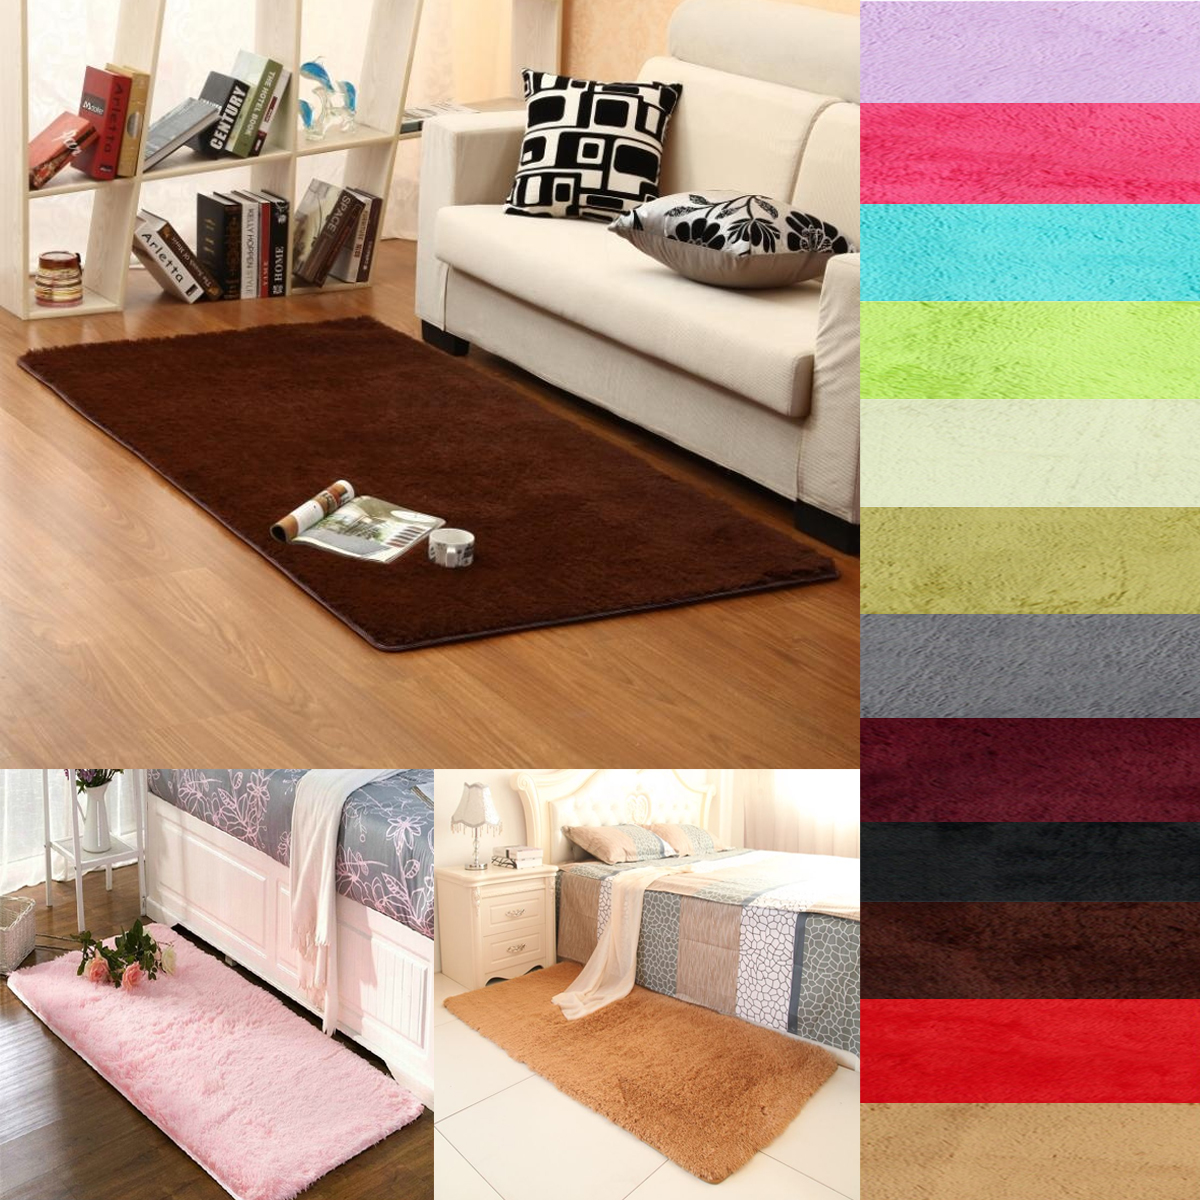 Dining Room Carpet 23 62x47 2 13 Colors Fluffy Rectangle Floor Rug Anti Skid Shaggy Area Rug Dining Room Carpet Yoga Bedroom Floor Mat Cover Child Play Mat Parlor